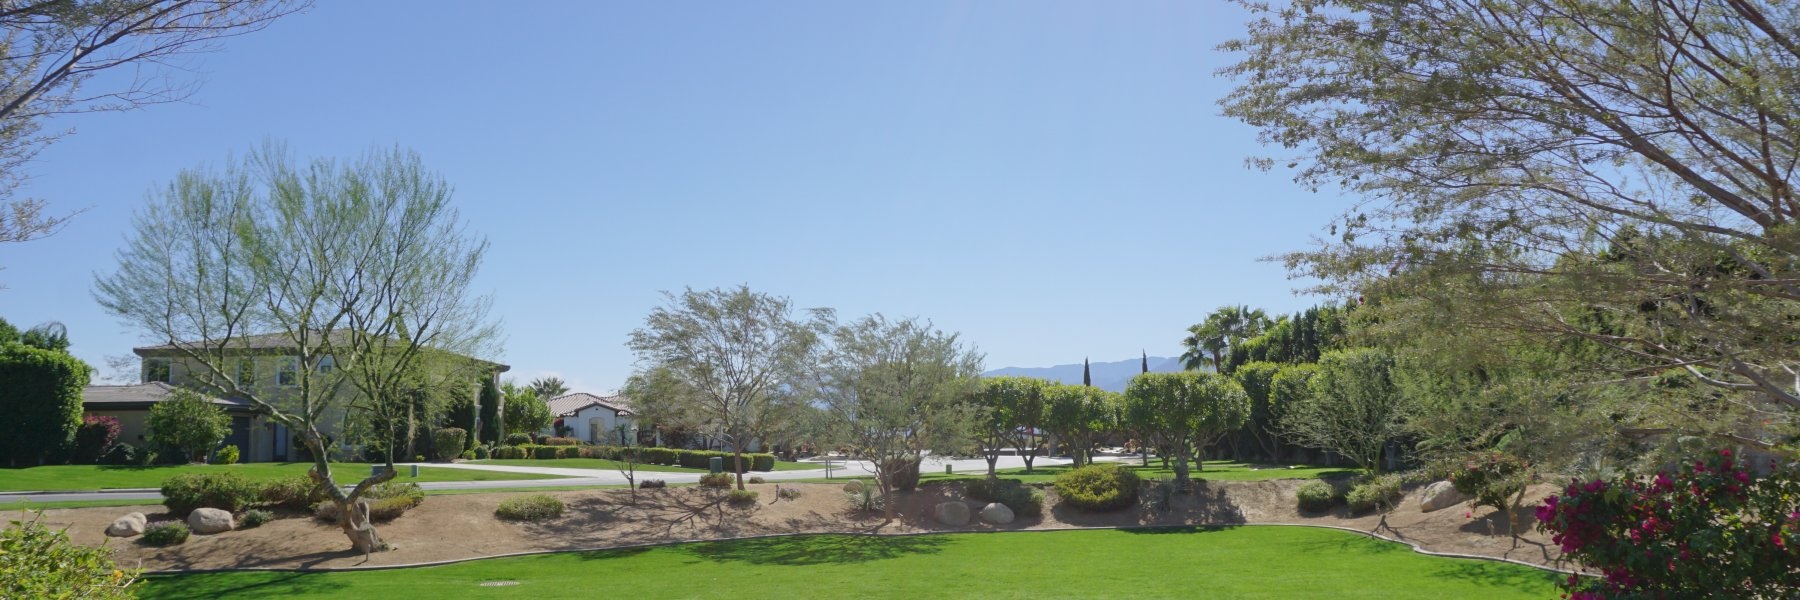 The Orchard is a community of homes in Indio California